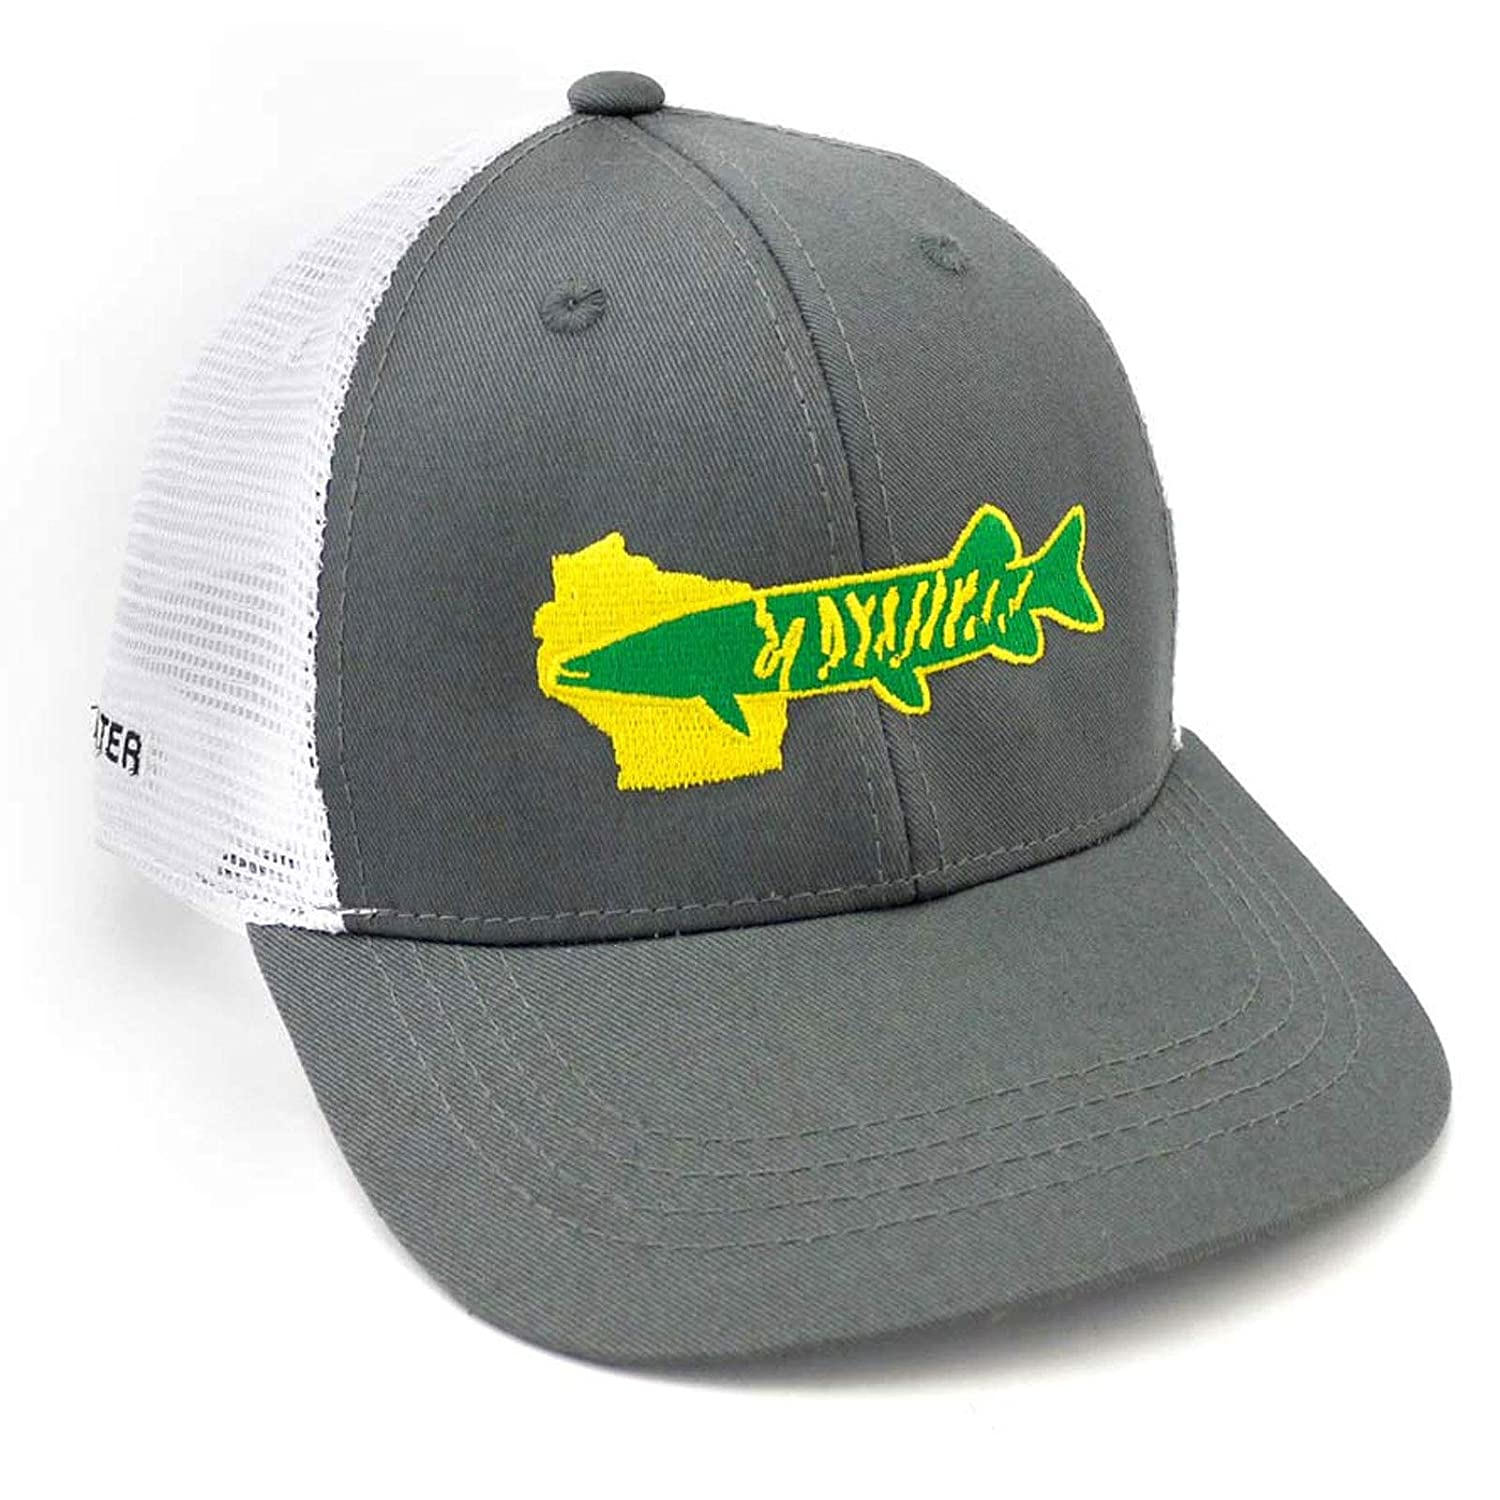 bcd704c1da893 Amazon.com   Rep Your Water Wisconsin Muskie Hat   Sports   Outdoors